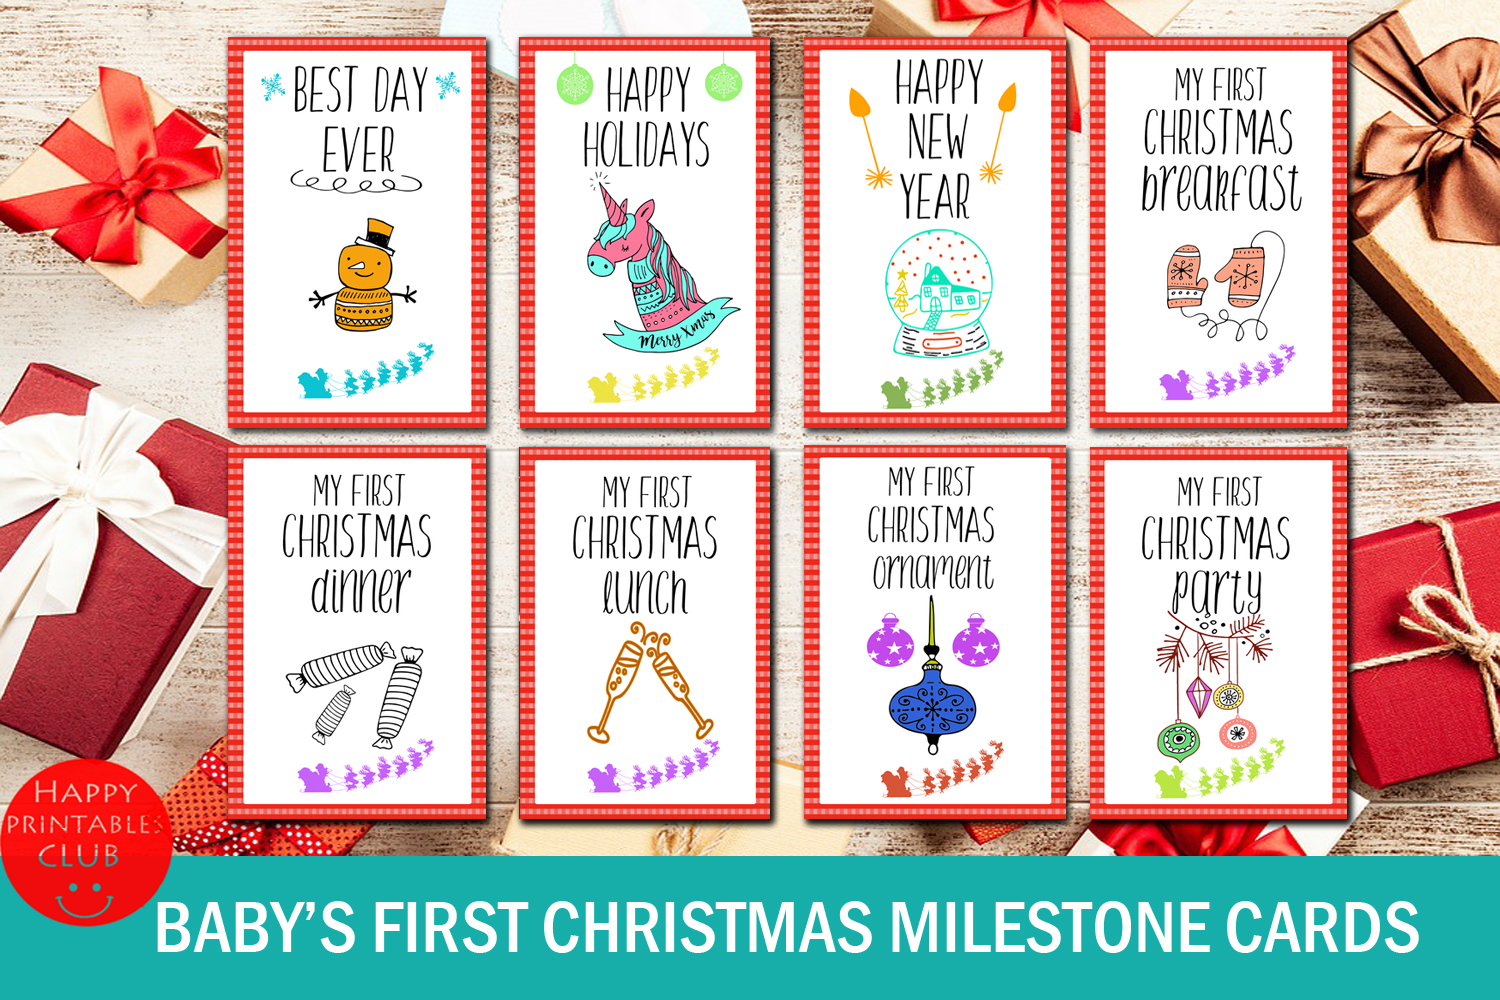 Download Free Baby S First Christmas Milestone Cards Graphic By Happy for Cricut Explore, Silhouette and other cutting machines.